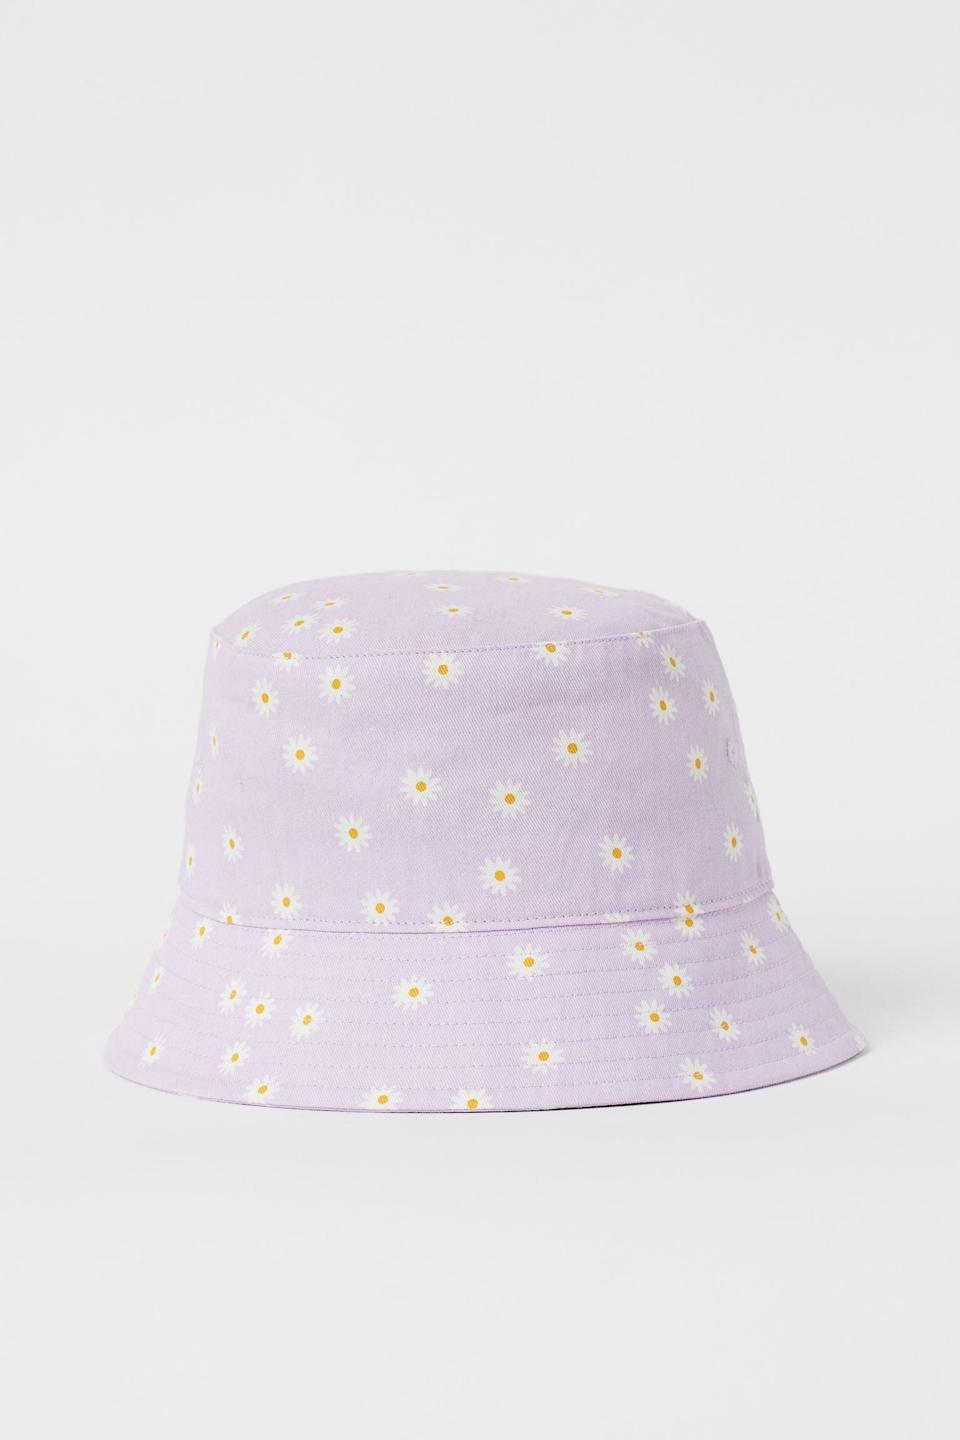 <p>This <span>H&amp;M Patterned Bucket Hat</span> ($10) comes in a charming print that will match other pastel pieces in your closet.</p>